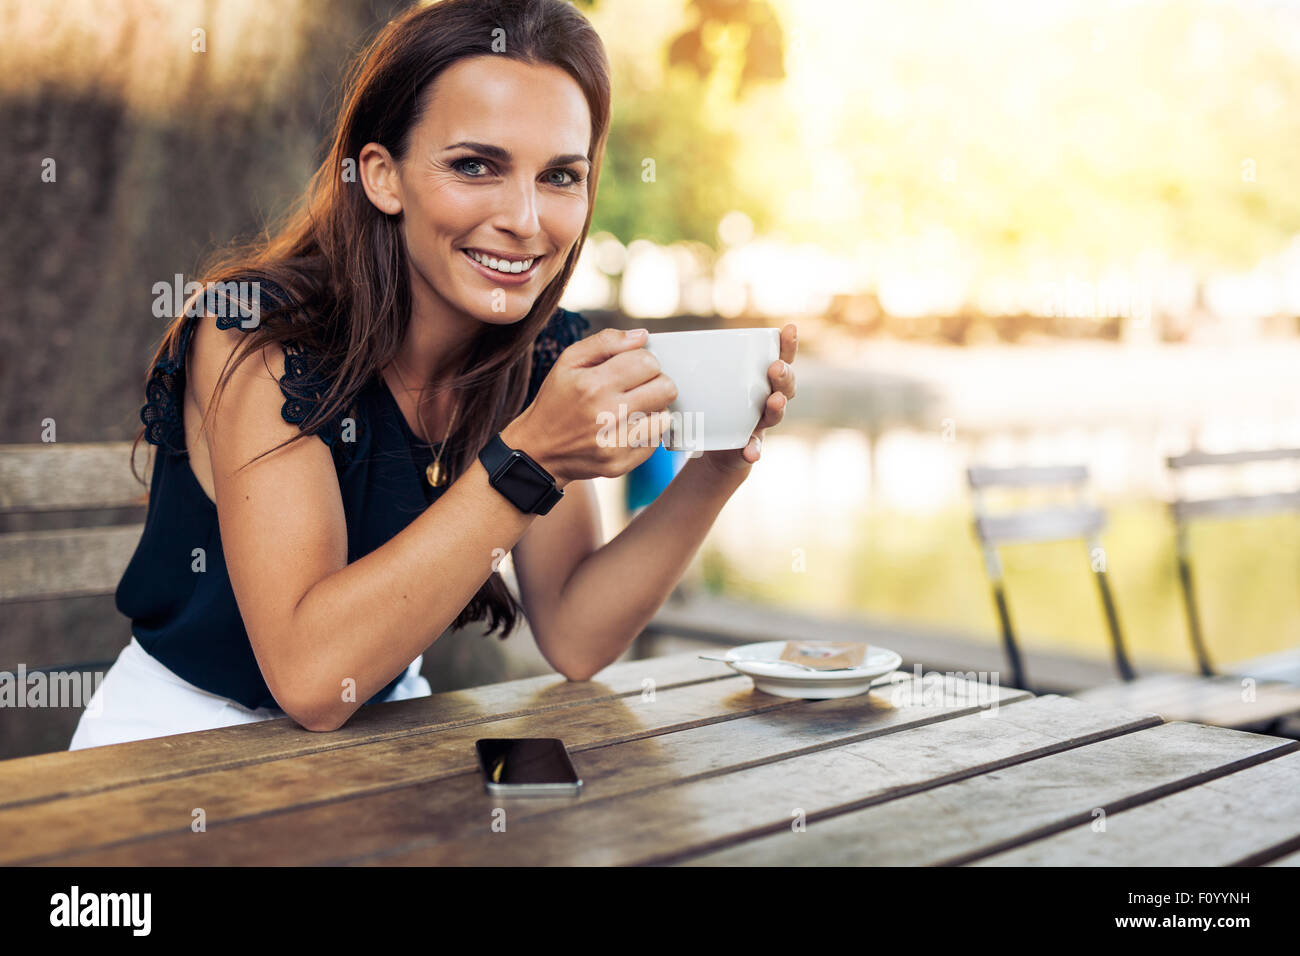 Portrait of beautiful young woman sitting at a table with a cup of coffee in hand looking at camera smiling while Stock Photo